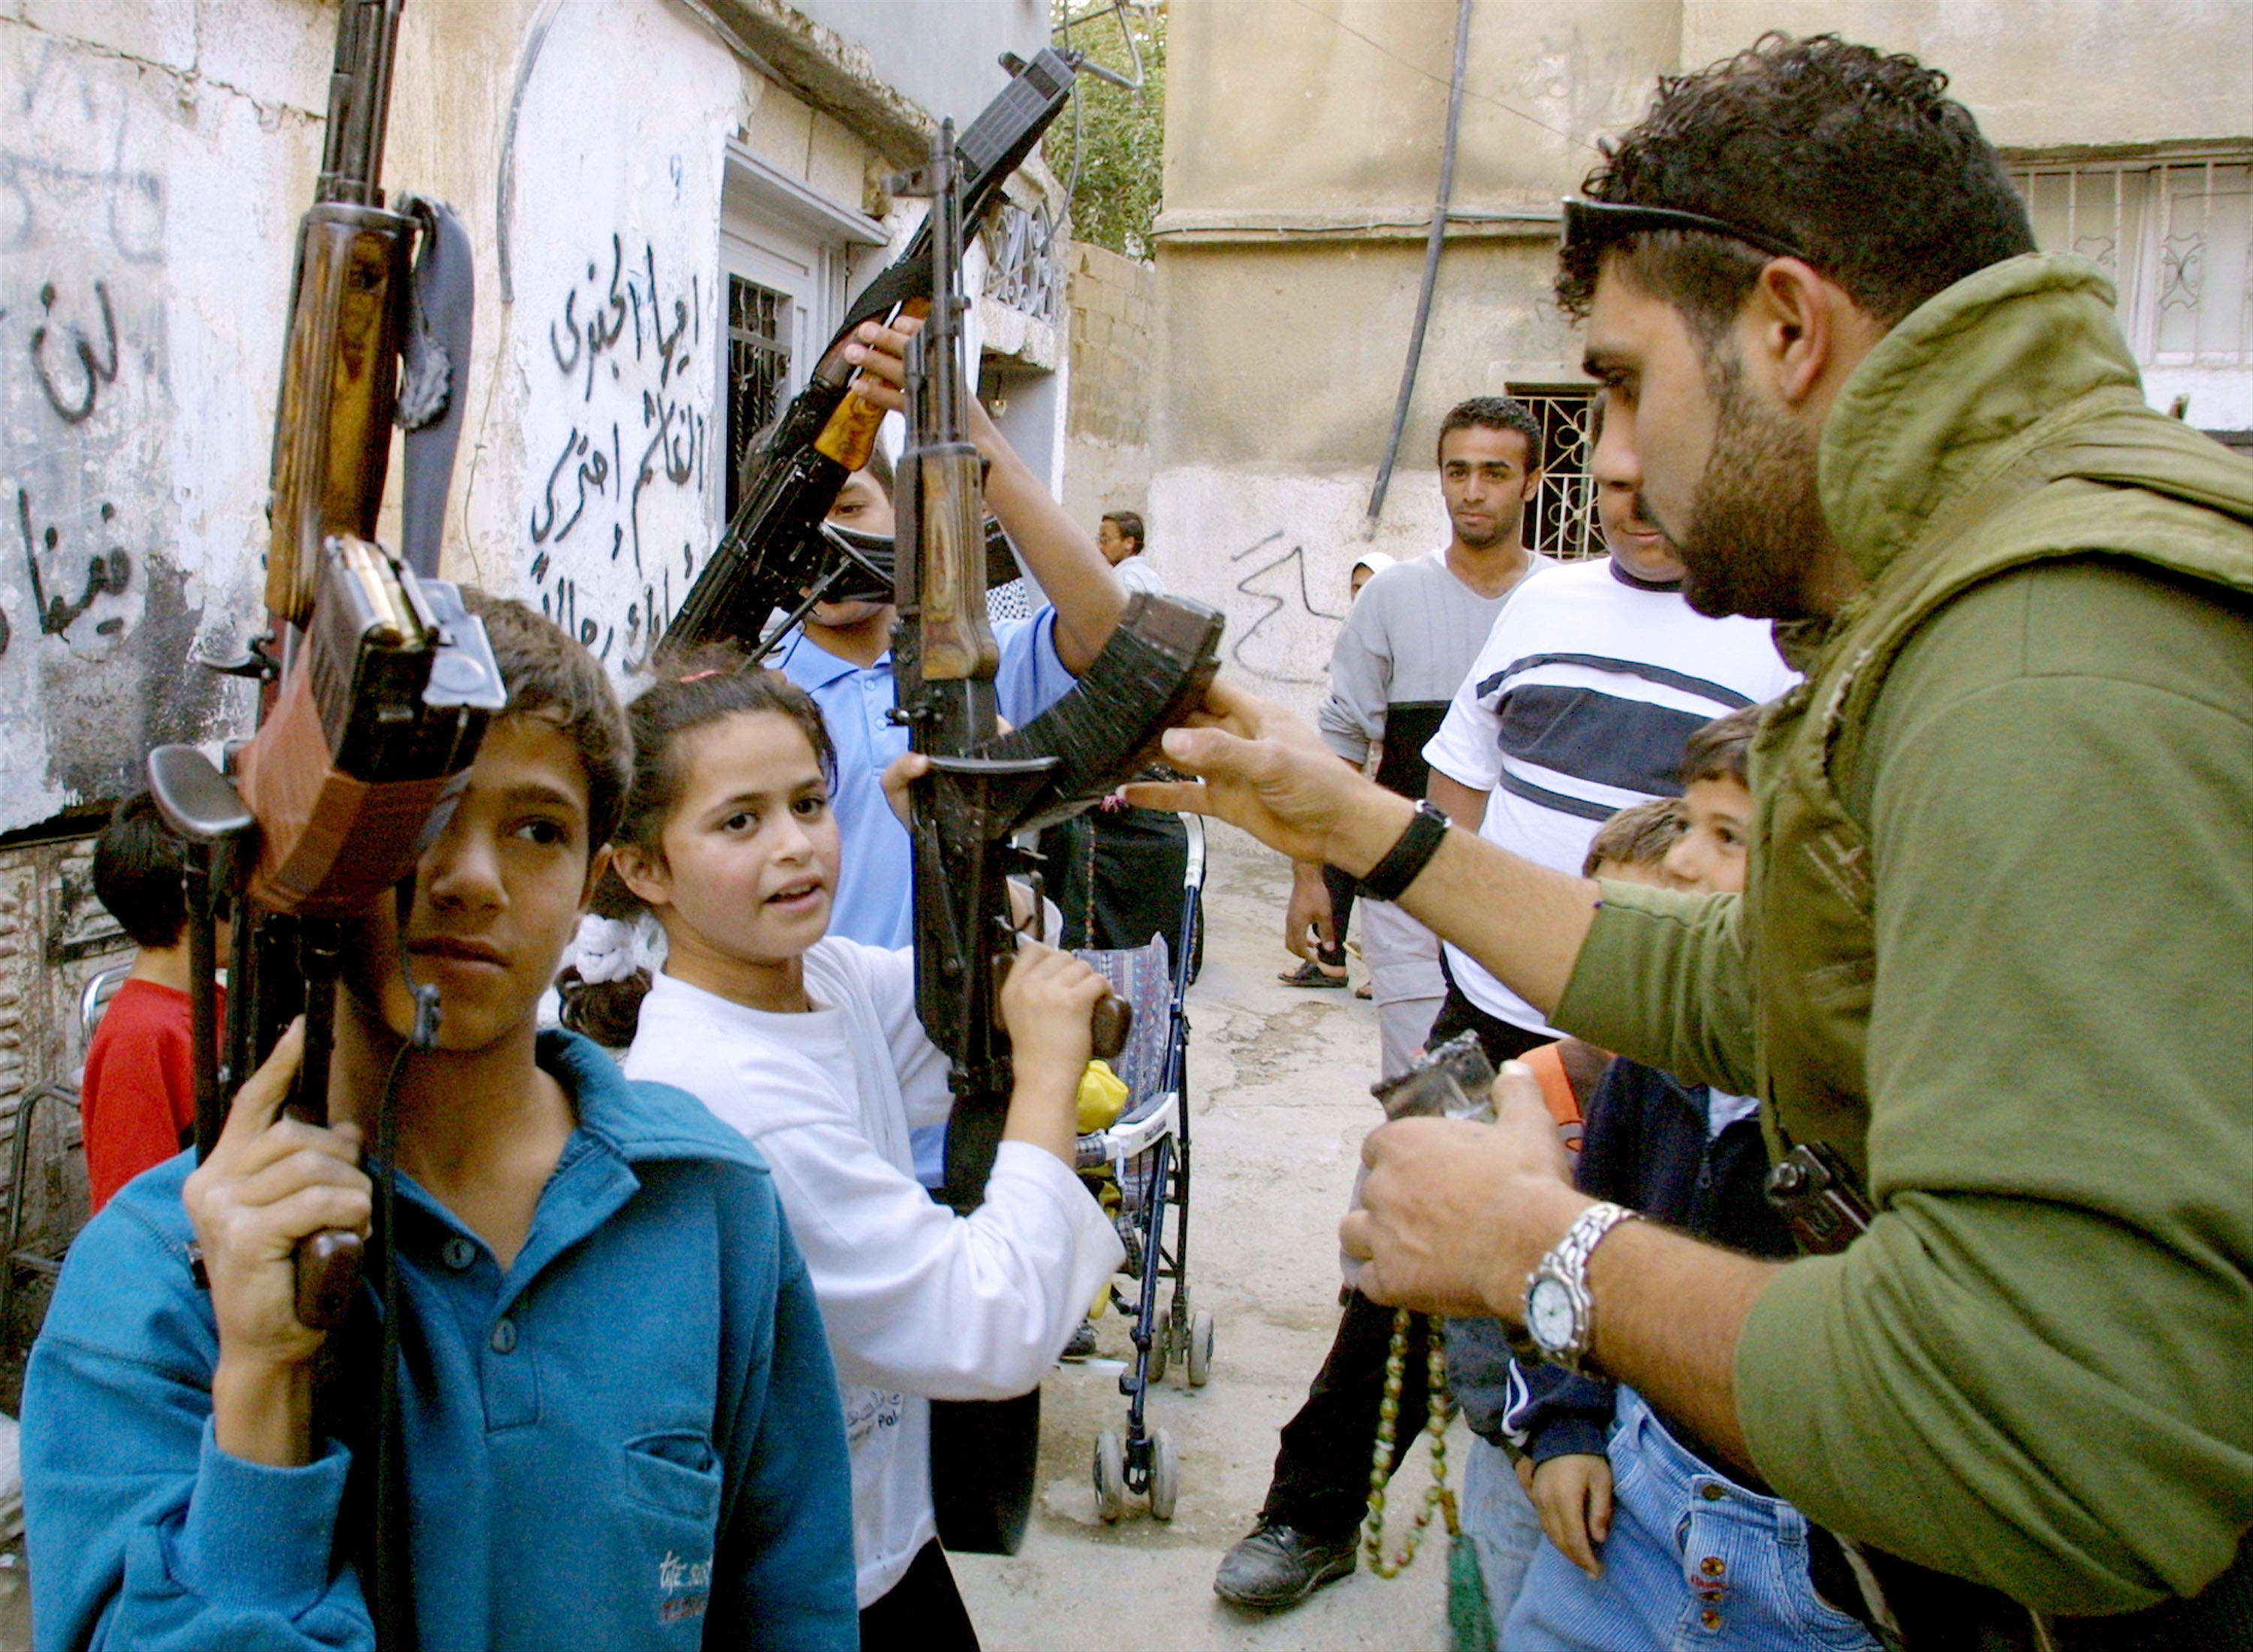 Girls as young as seven are in the training centres where Gaddafi is training up teenage boys and girls to take up arms against the 'crusader' enemy